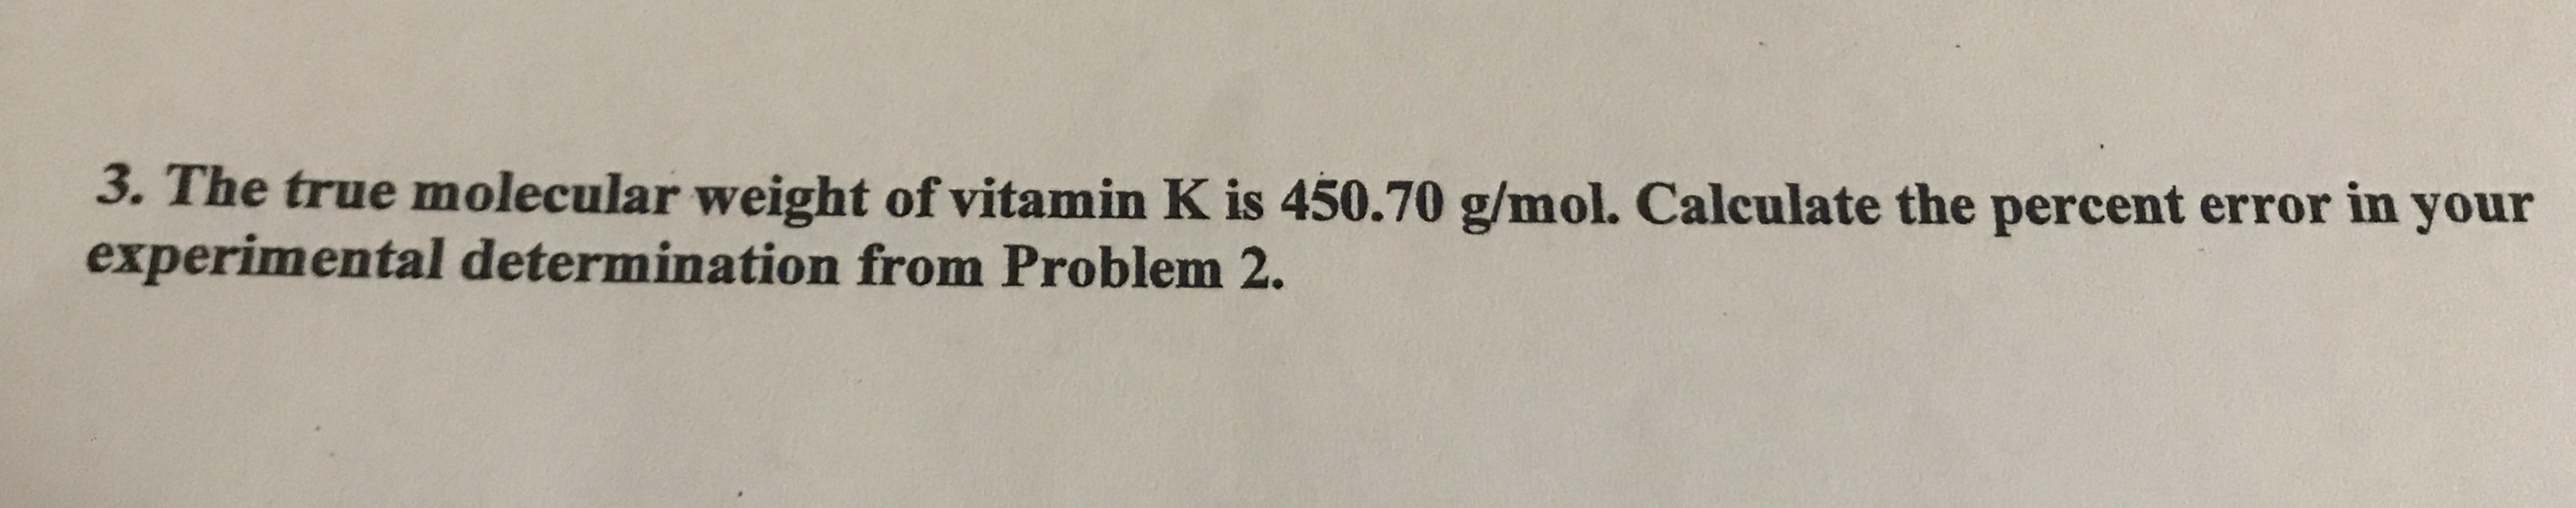 3. The true molecular weight of vitamin K is 450.70 g/mol. Calculate the percent error in your experimental determination from Problem 2.